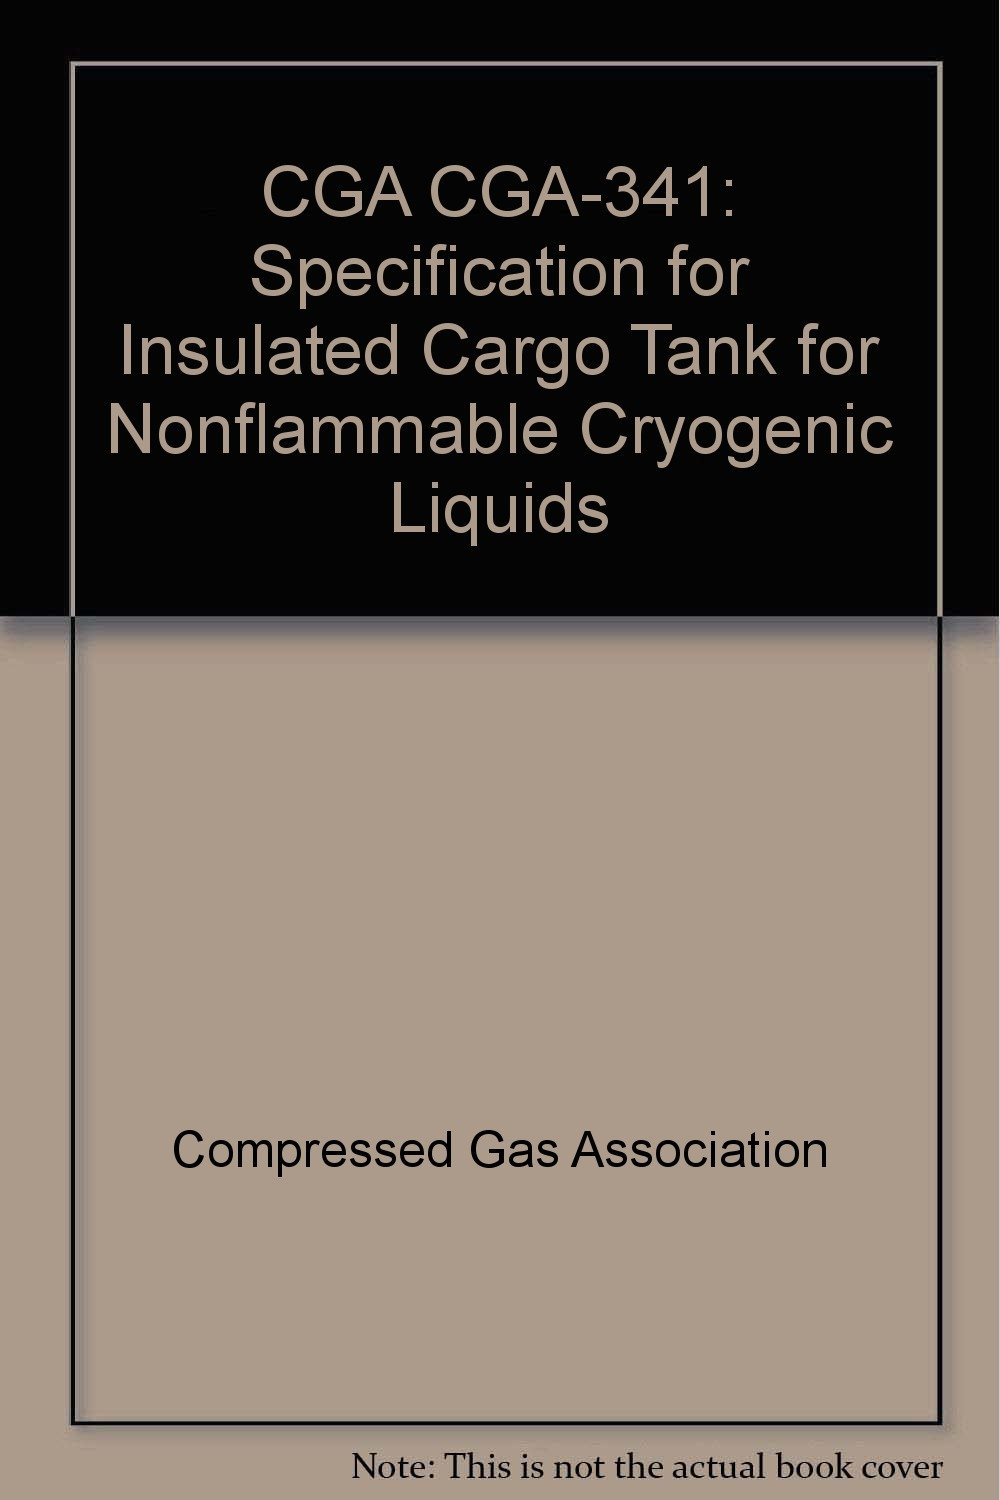 CGA CGA-341: Specification for Insulated Cargo Tank for